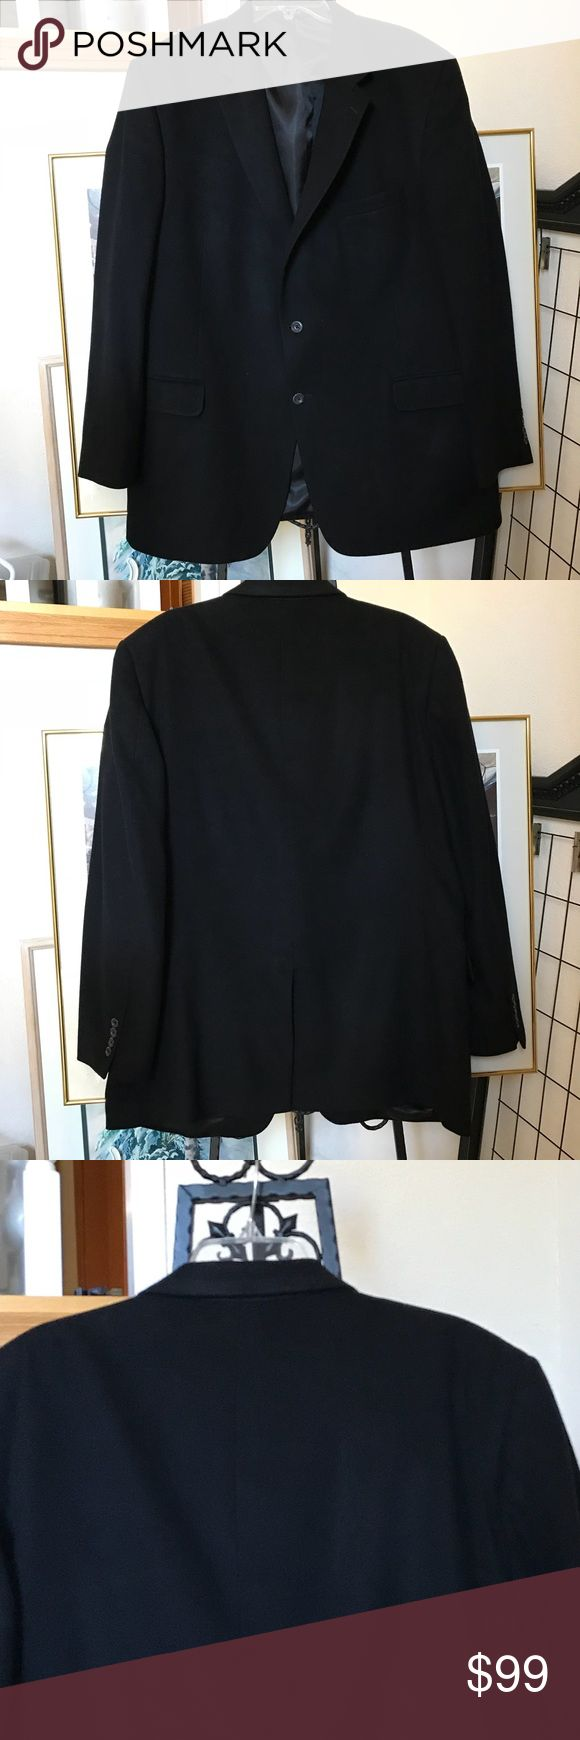 JoS. A. BANK 💯% Cashmere Sport Coat. 48L BIG GUY, this one's for you. Like new Cashmere Sport Coat with luxurious silky lining. Fine tailoring in 100💯 black Cashmere. Measurements upon request. JoS. A. Bank Jackets & Coats Lightweight & Shirt Jackets